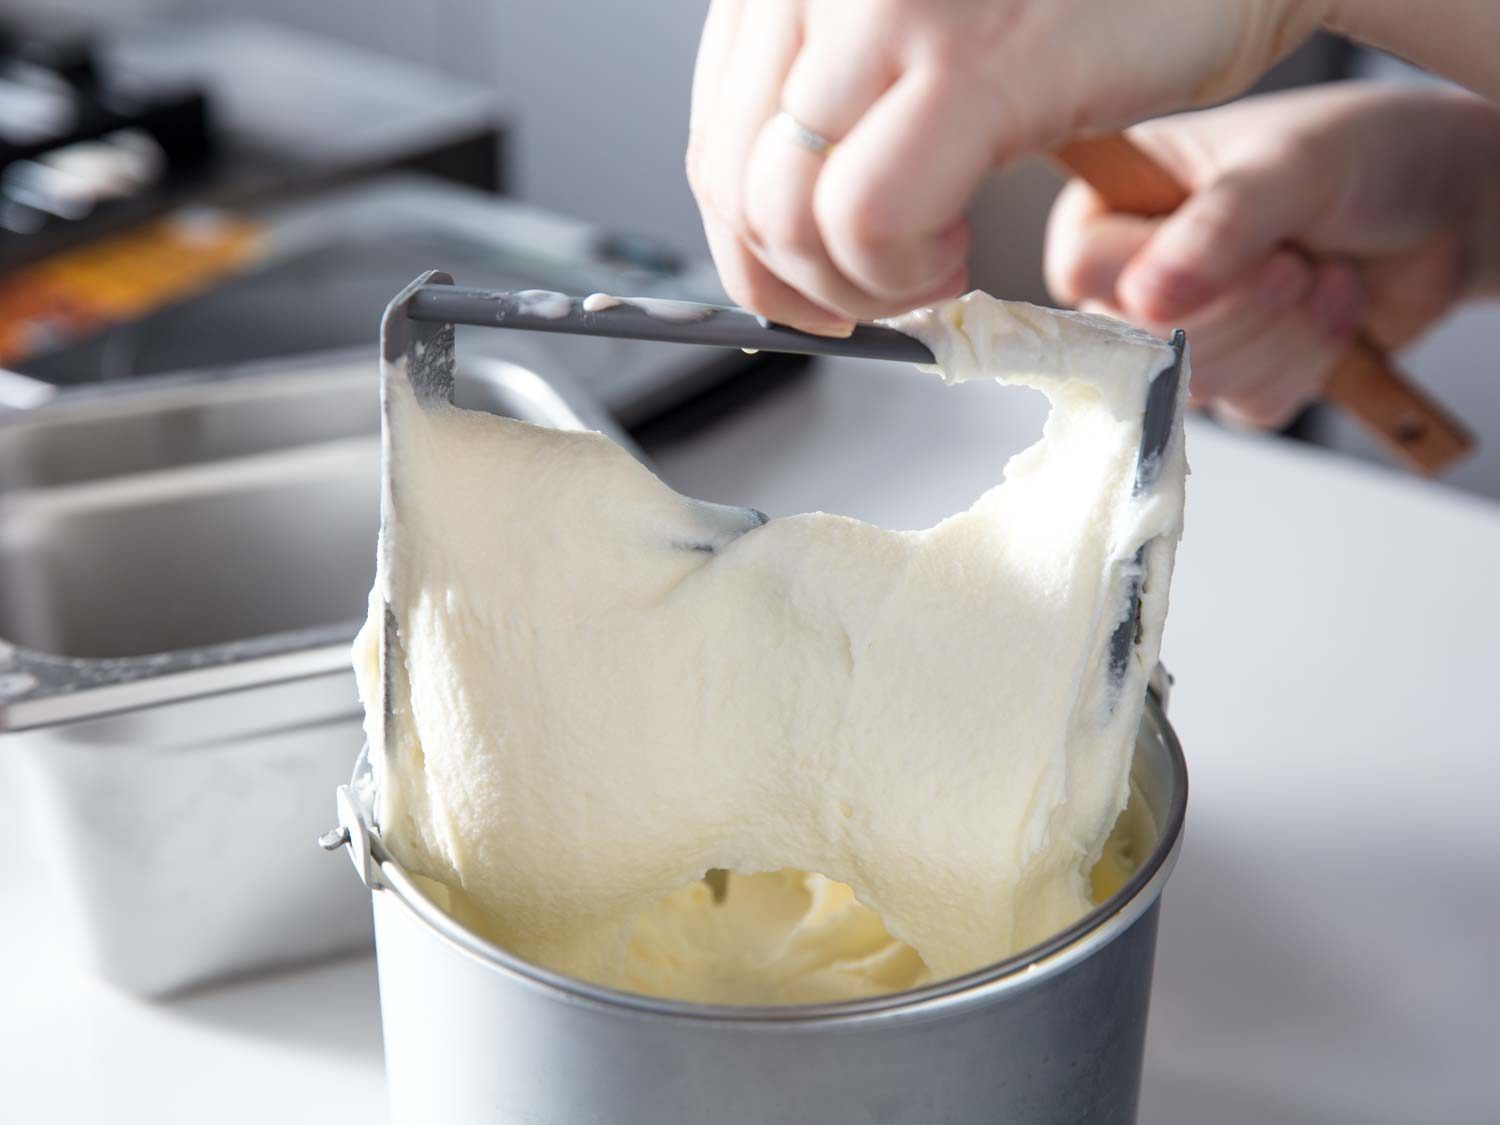 Removing the paddle from an ice cream maker full of ice cream.